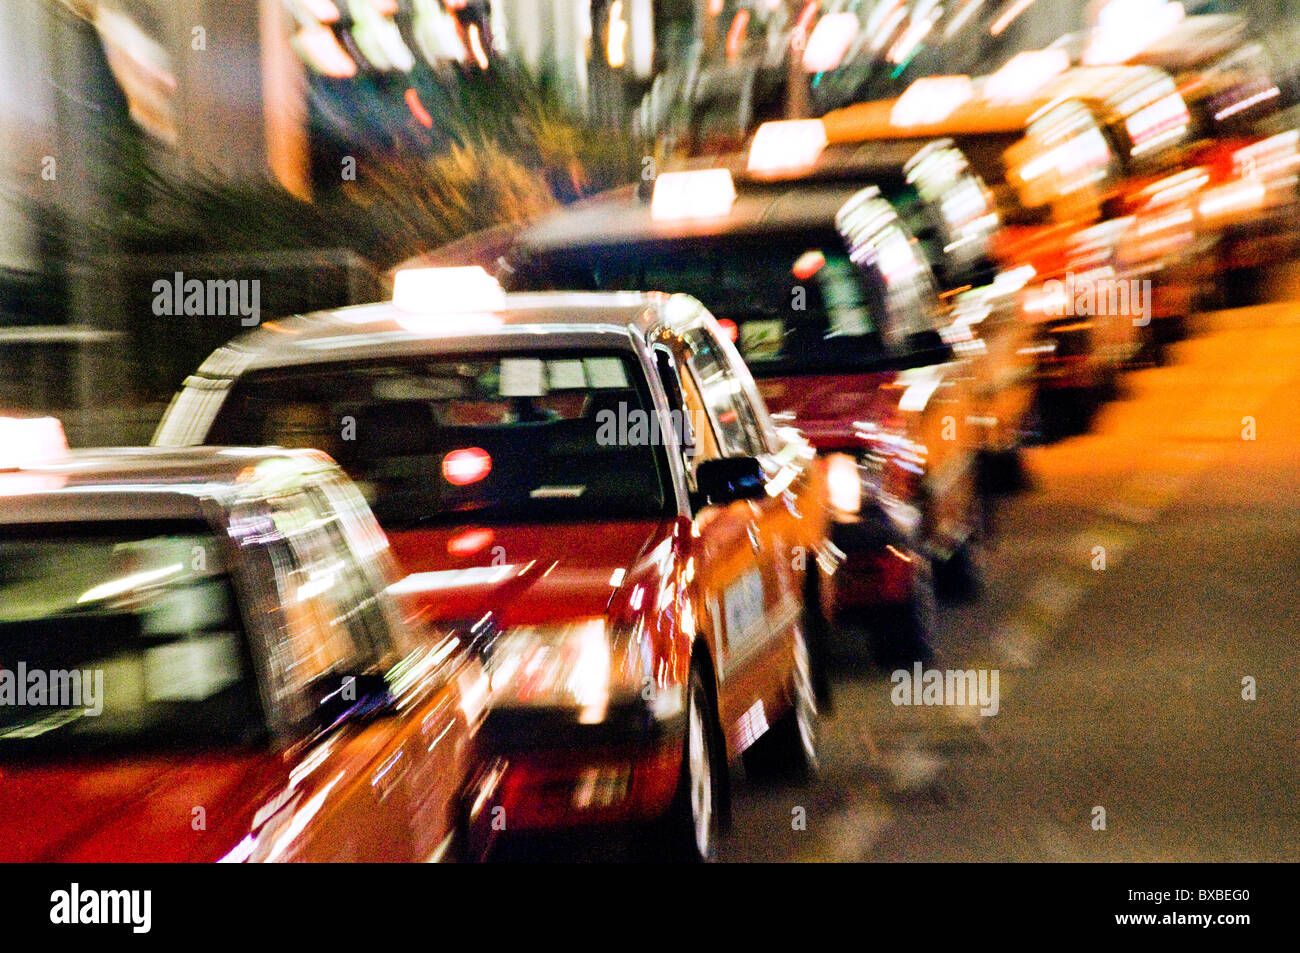 Queue of taxicabs waiting in line Changi airport terminal in Singapore southeast Asia - Stock Image